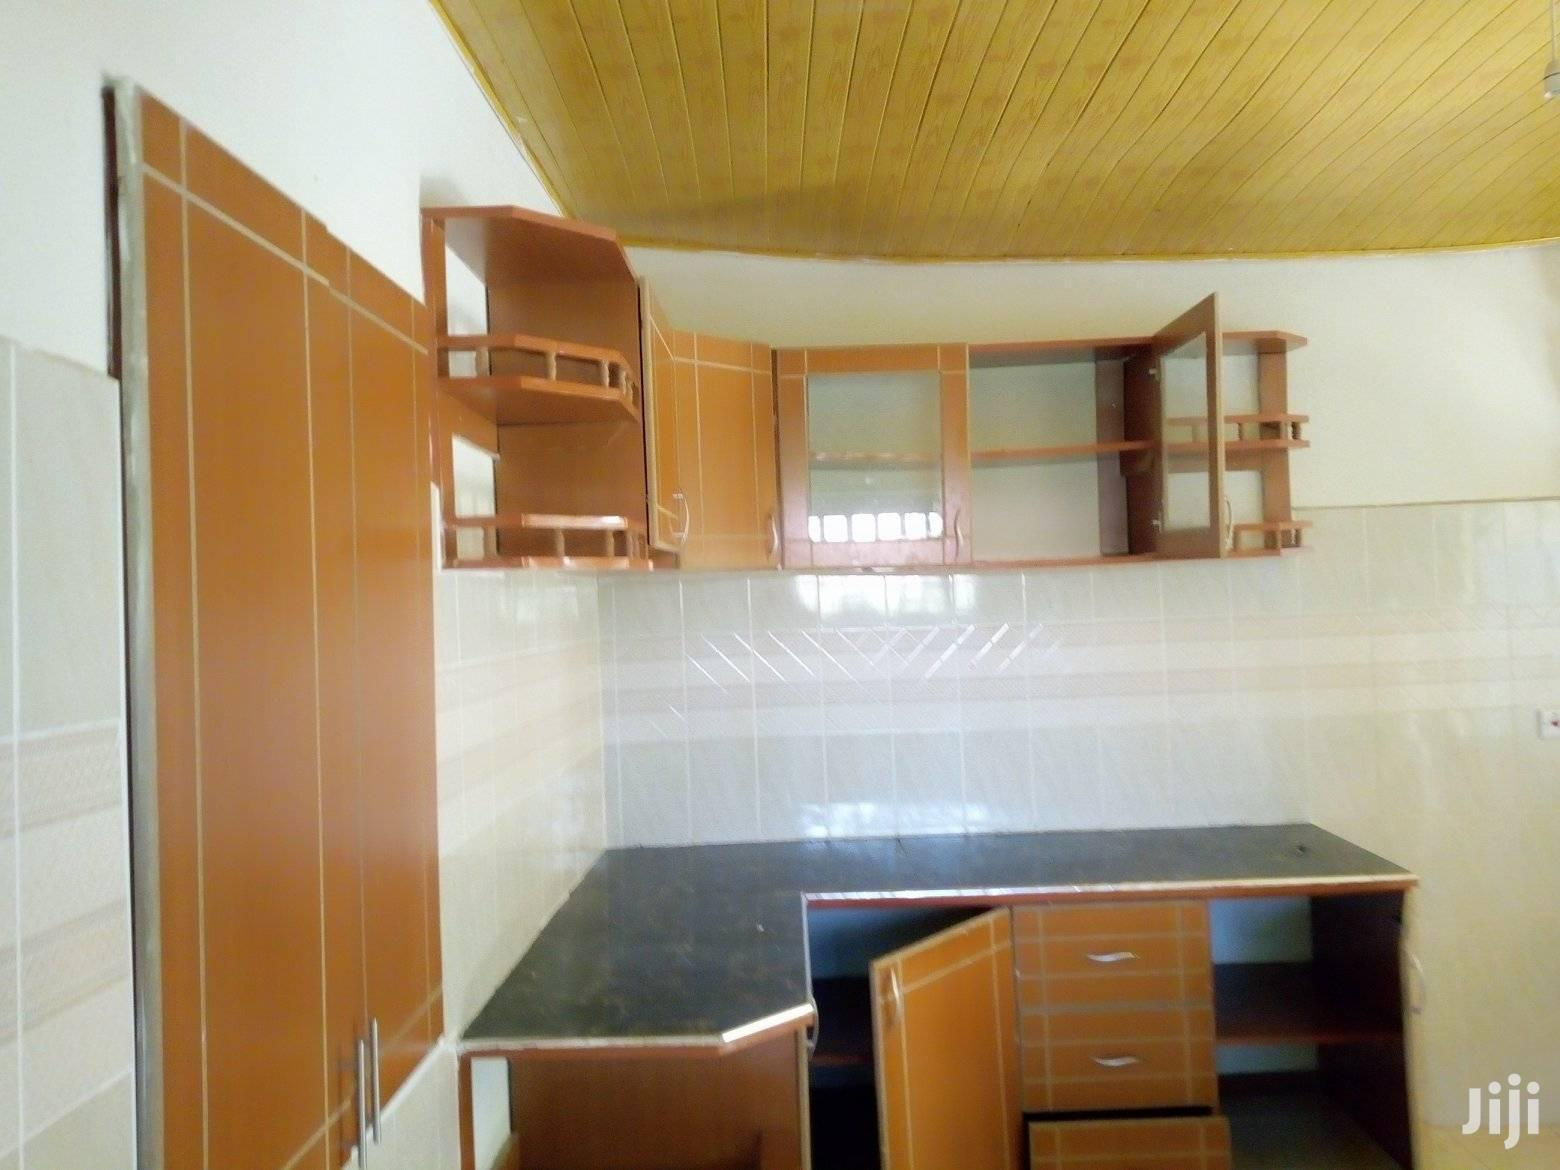 3 Bdrms Bungalow With SQ To Rent In Ongata Rongai, Rimpa   Houses & Apartments For Rent for sale in Ongata Rongai, Kajiado, Kenya